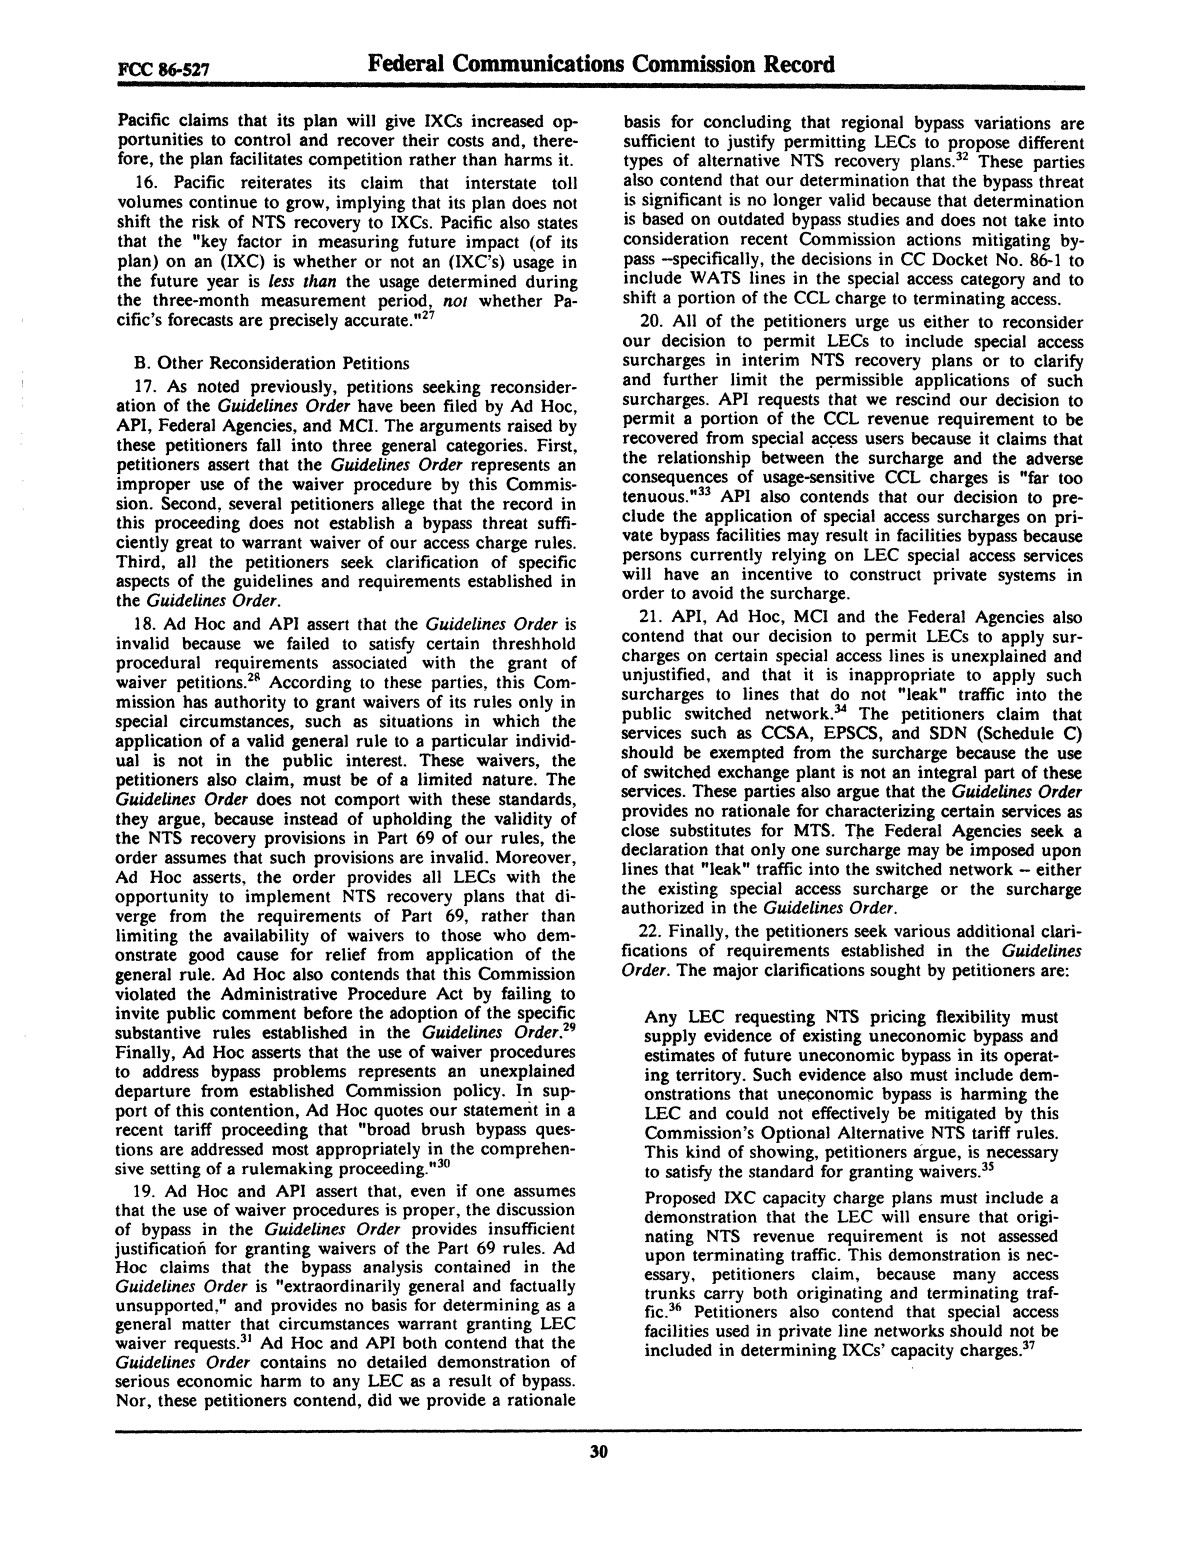 FCC Record, Volume 2, No. 1, Pages 1 to 409, January 5 - January 16, 1987                                                                                                      30